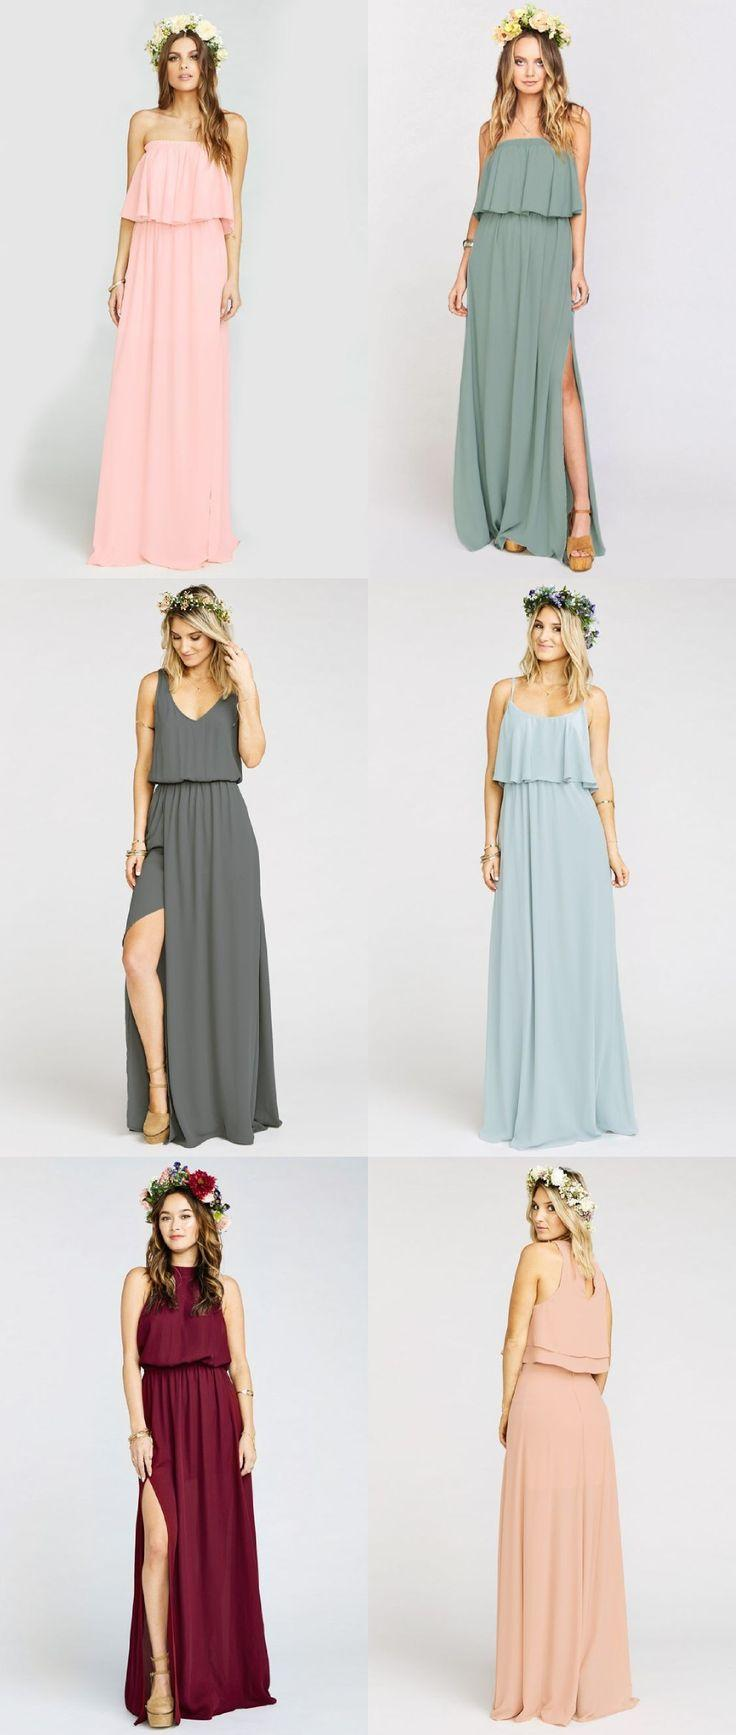 Boda - Boho Bridesmaid Dresses